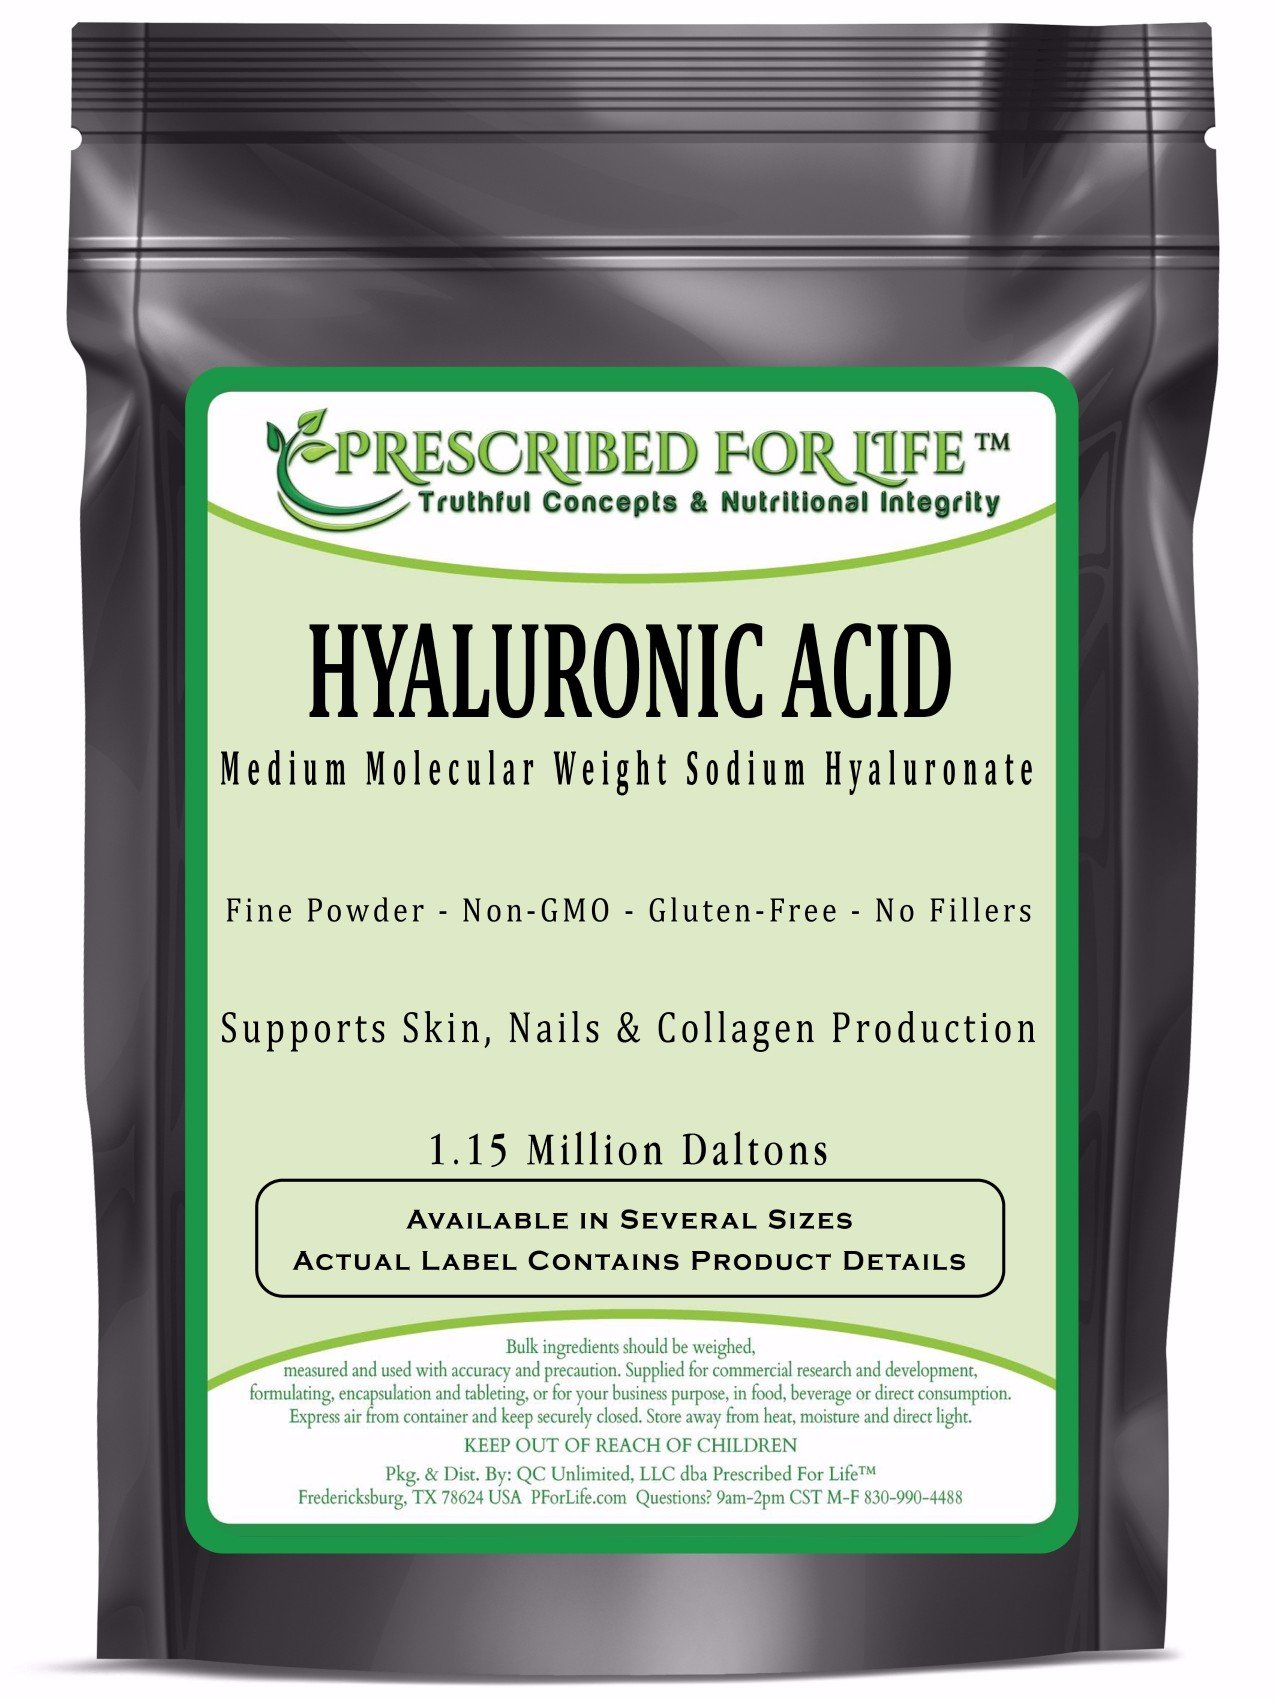 Hyaluronic Acid - Natural Food Grade Sodium Hyaluronate (HA) Powder - Medium Molecular Weight 1.15 mil Daltons, 5 lb